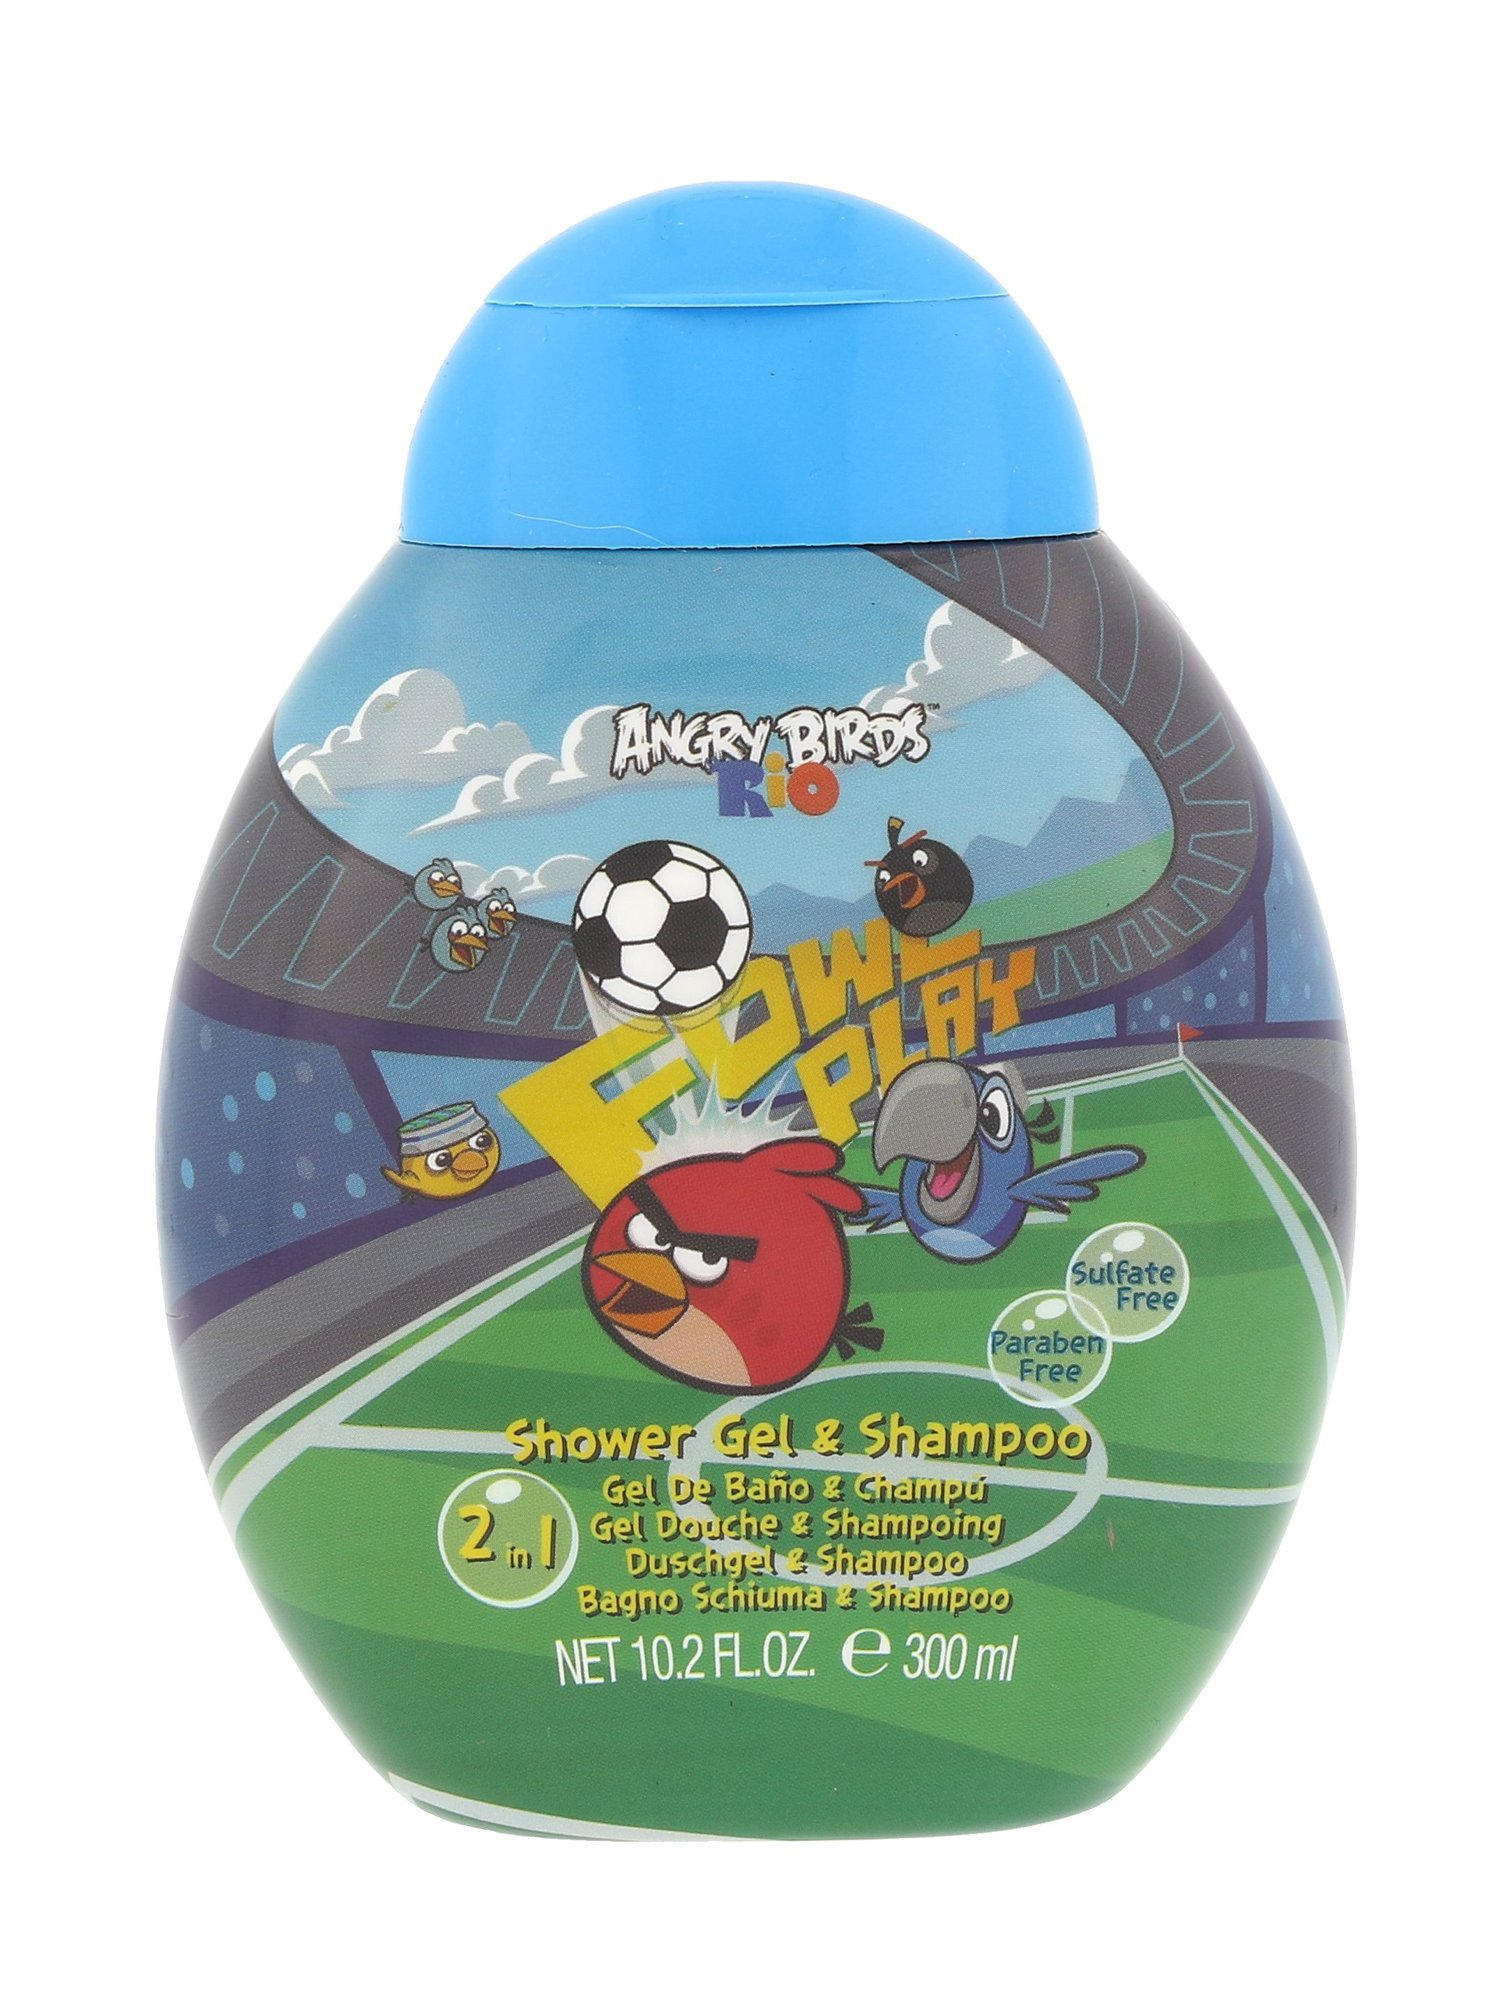 Angry Birds Angry Birds Rio Shower gel 300ml